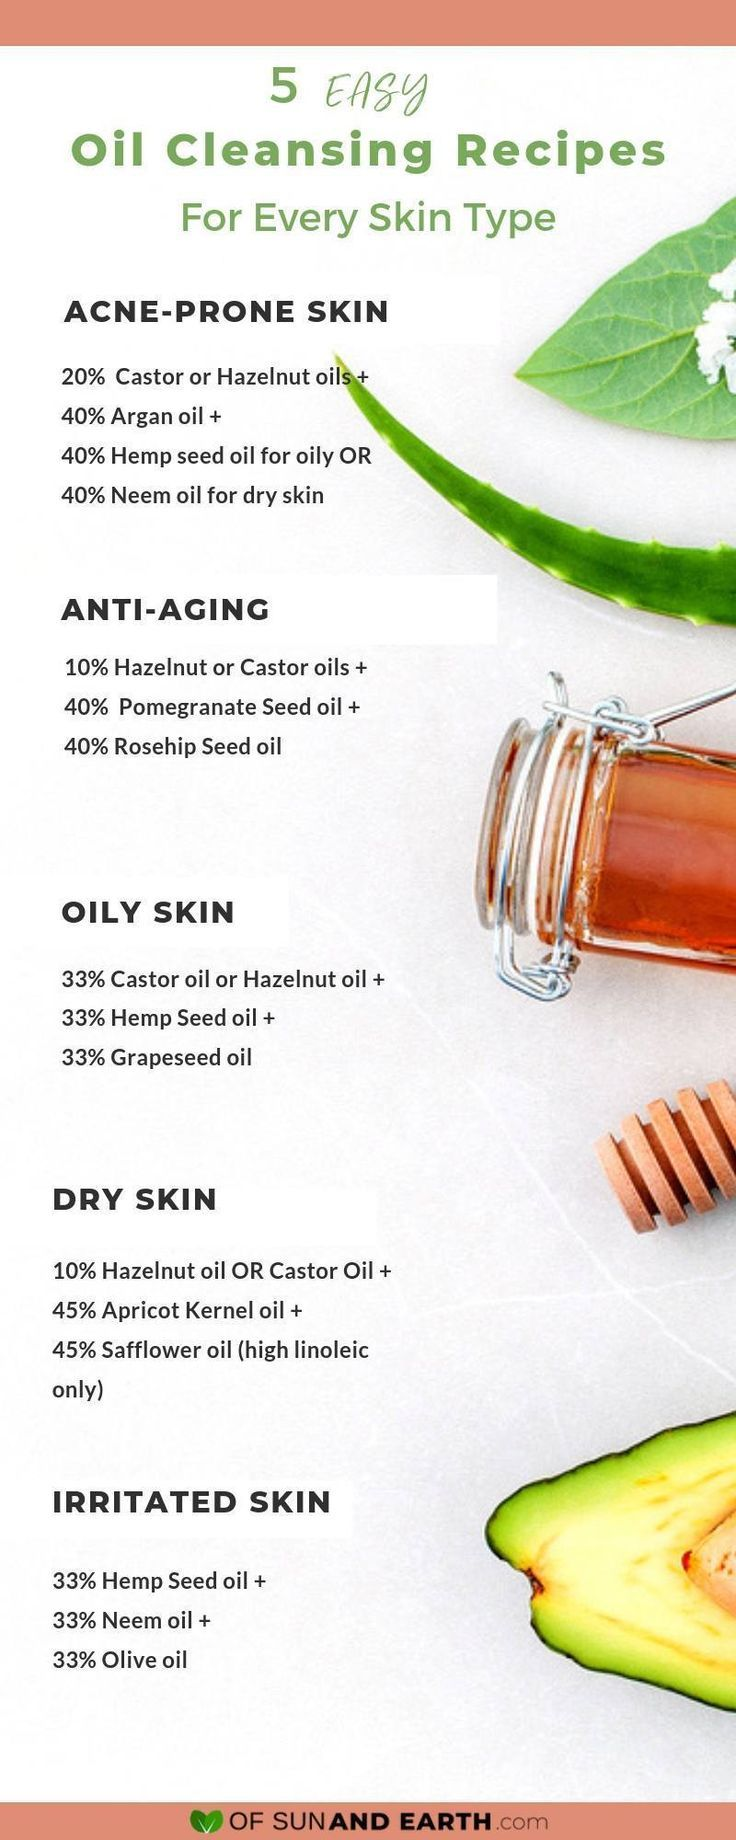 5 Super Effective Oil Cleansing Recipes To Try Tonight With